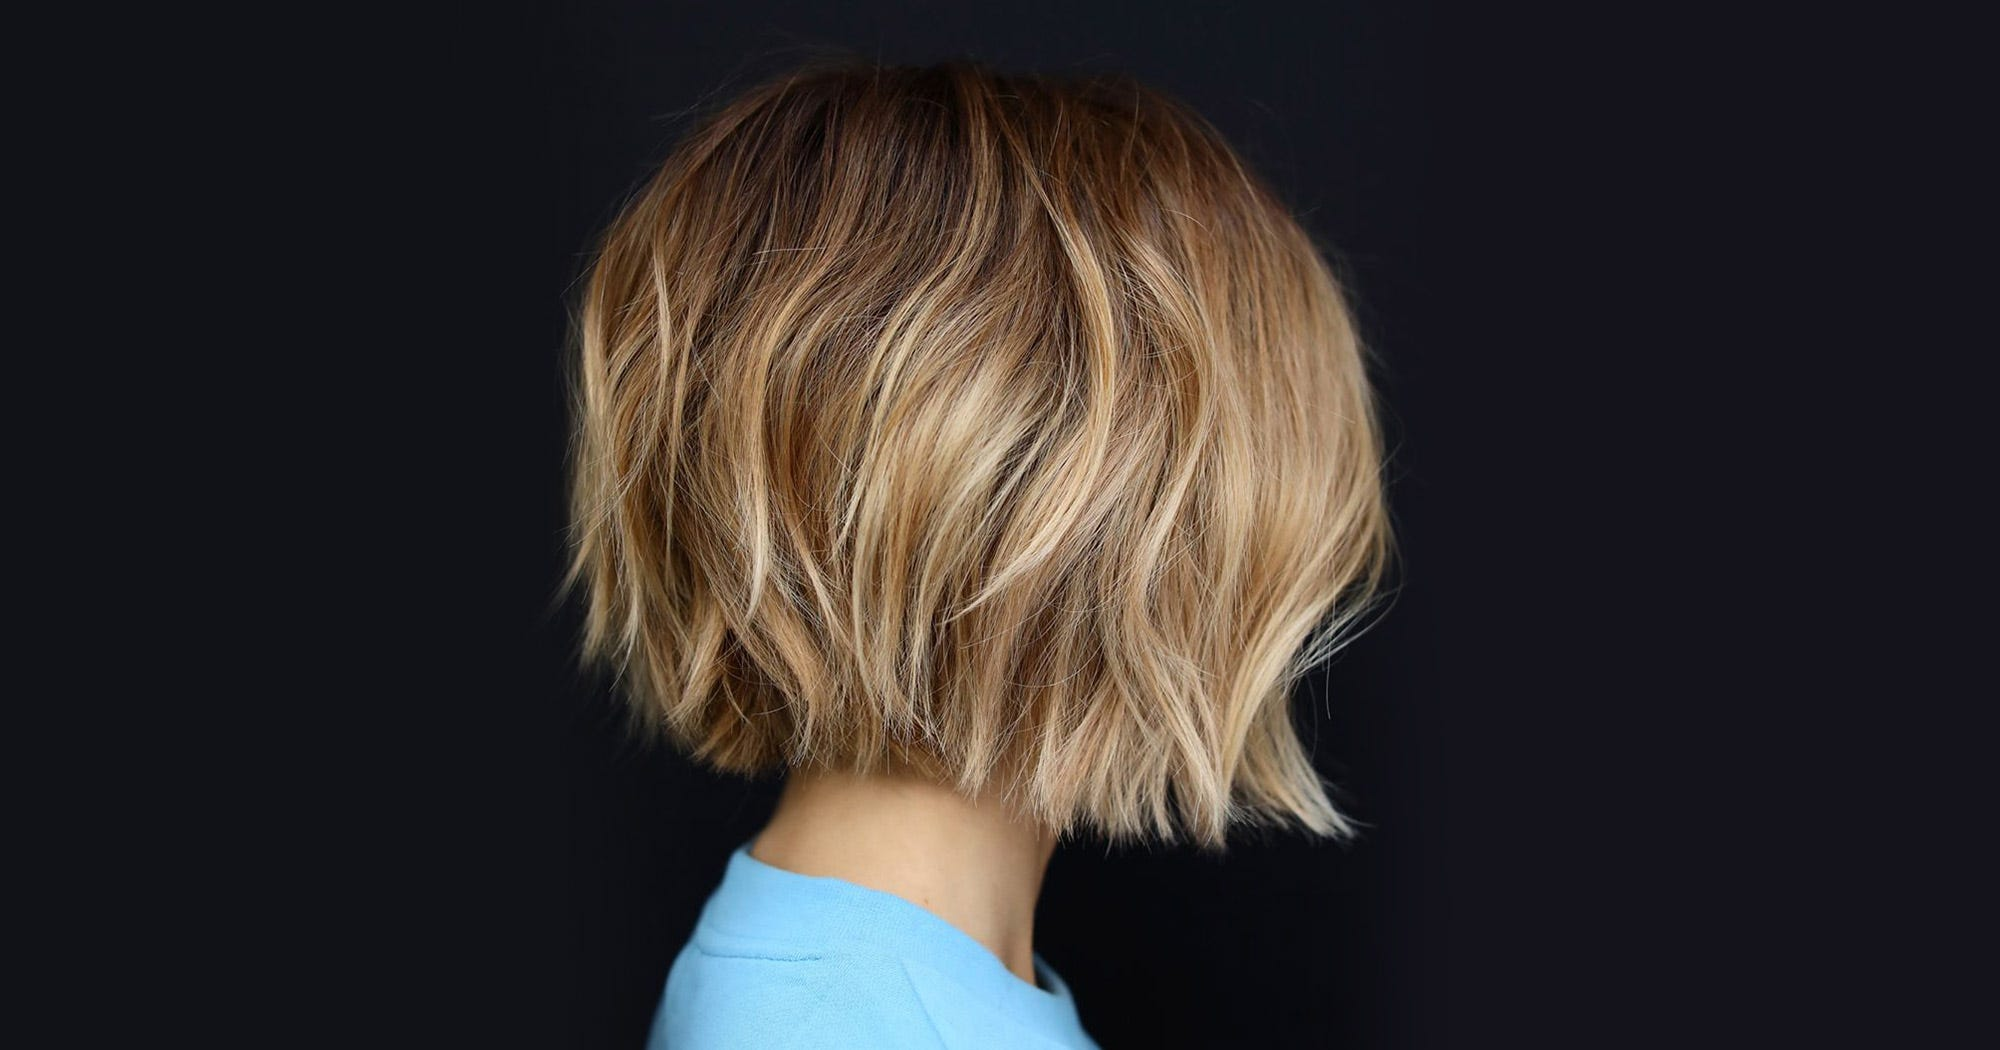 Bobbed Hair Styles: A-Line Bob Haircut Looks For Chic Hairstyles In 2019